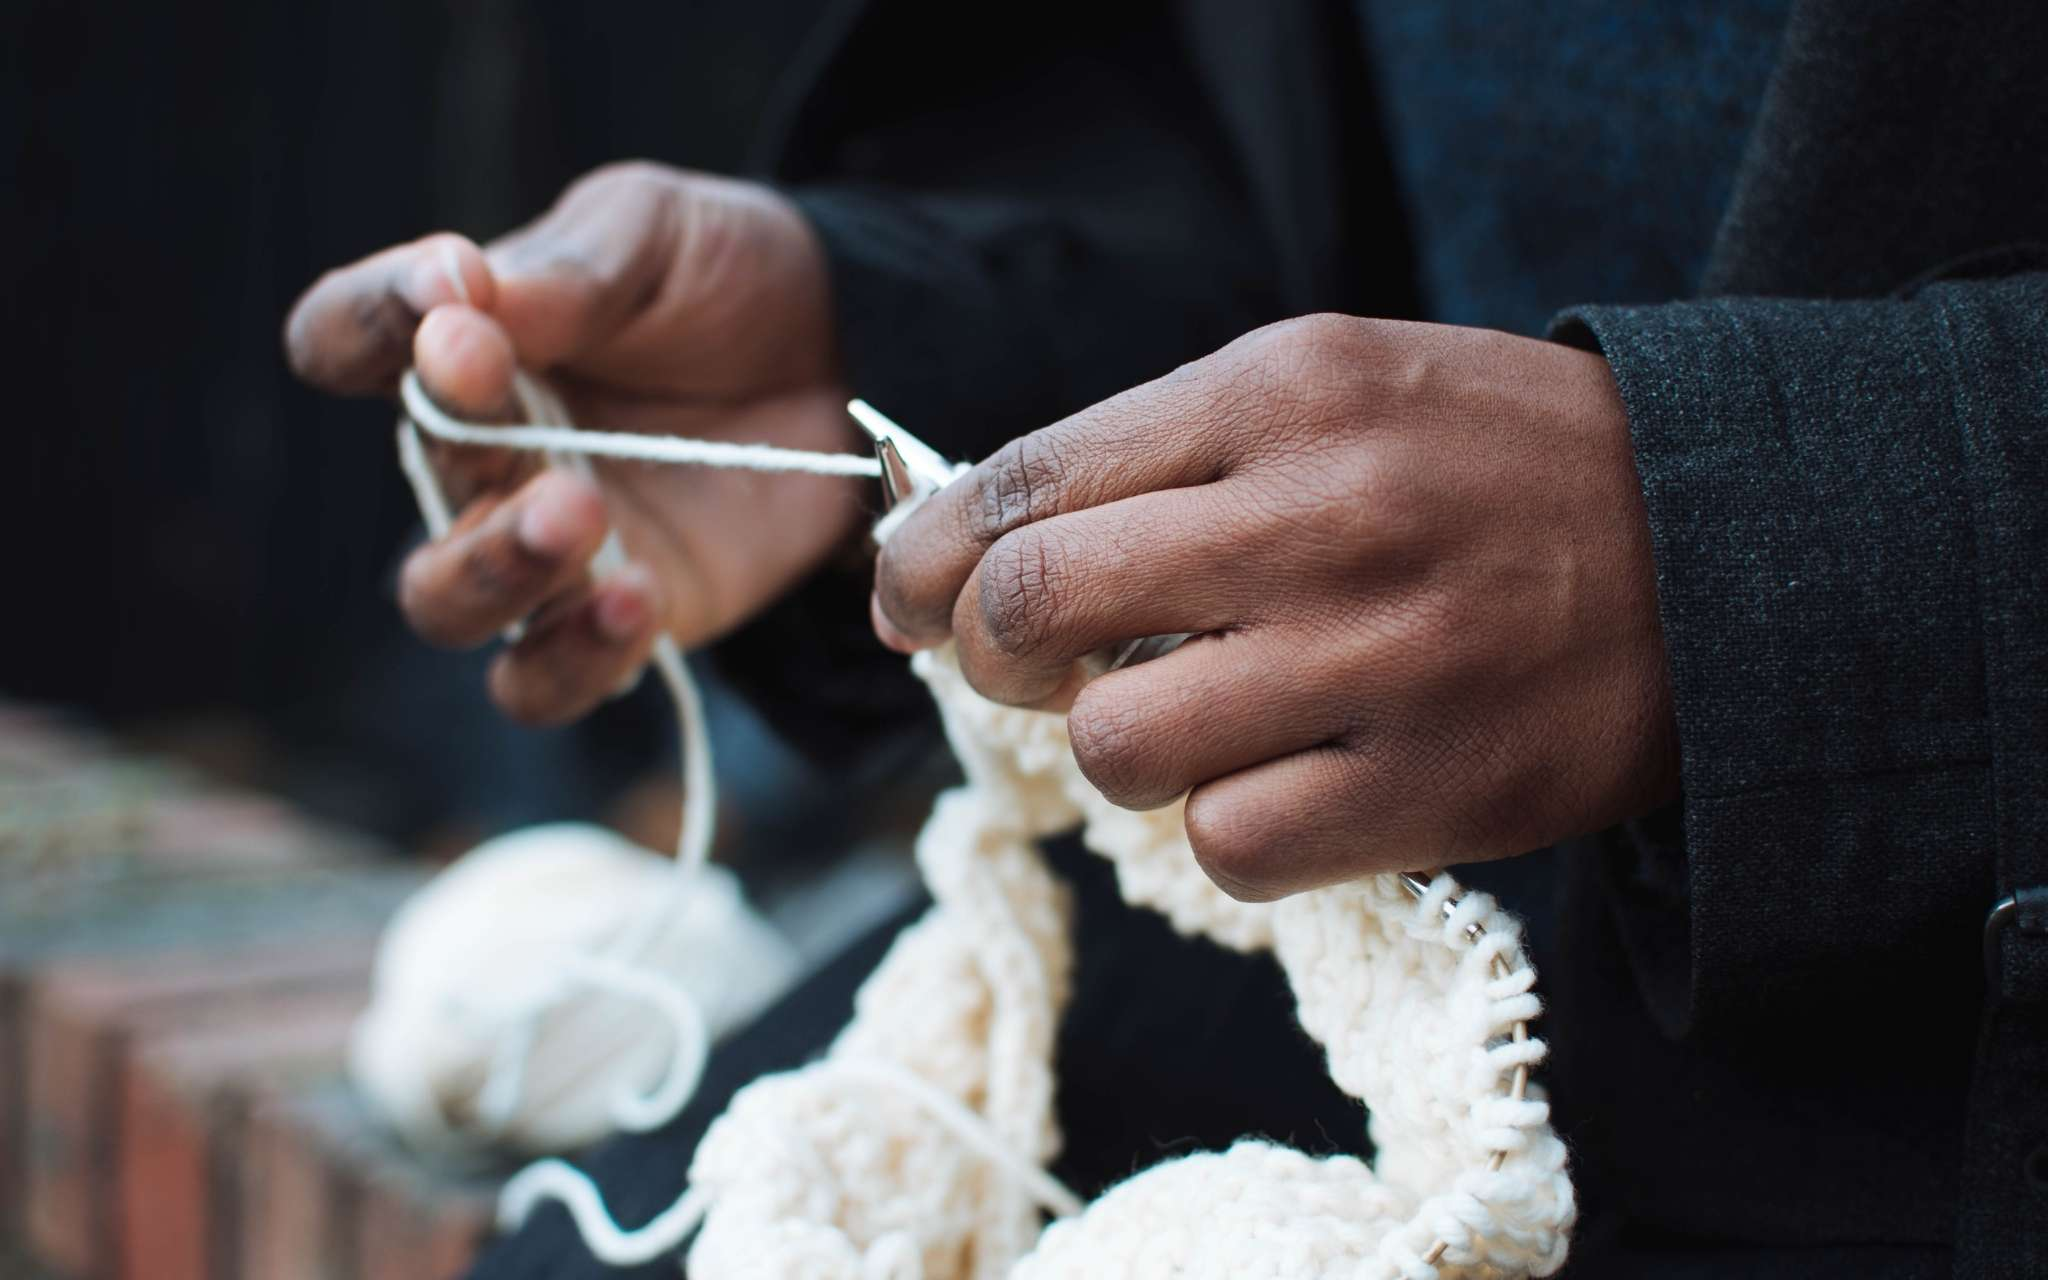 A black person knits on a white sweater with circular needs, the ball of yarn lies on a wall to the side.